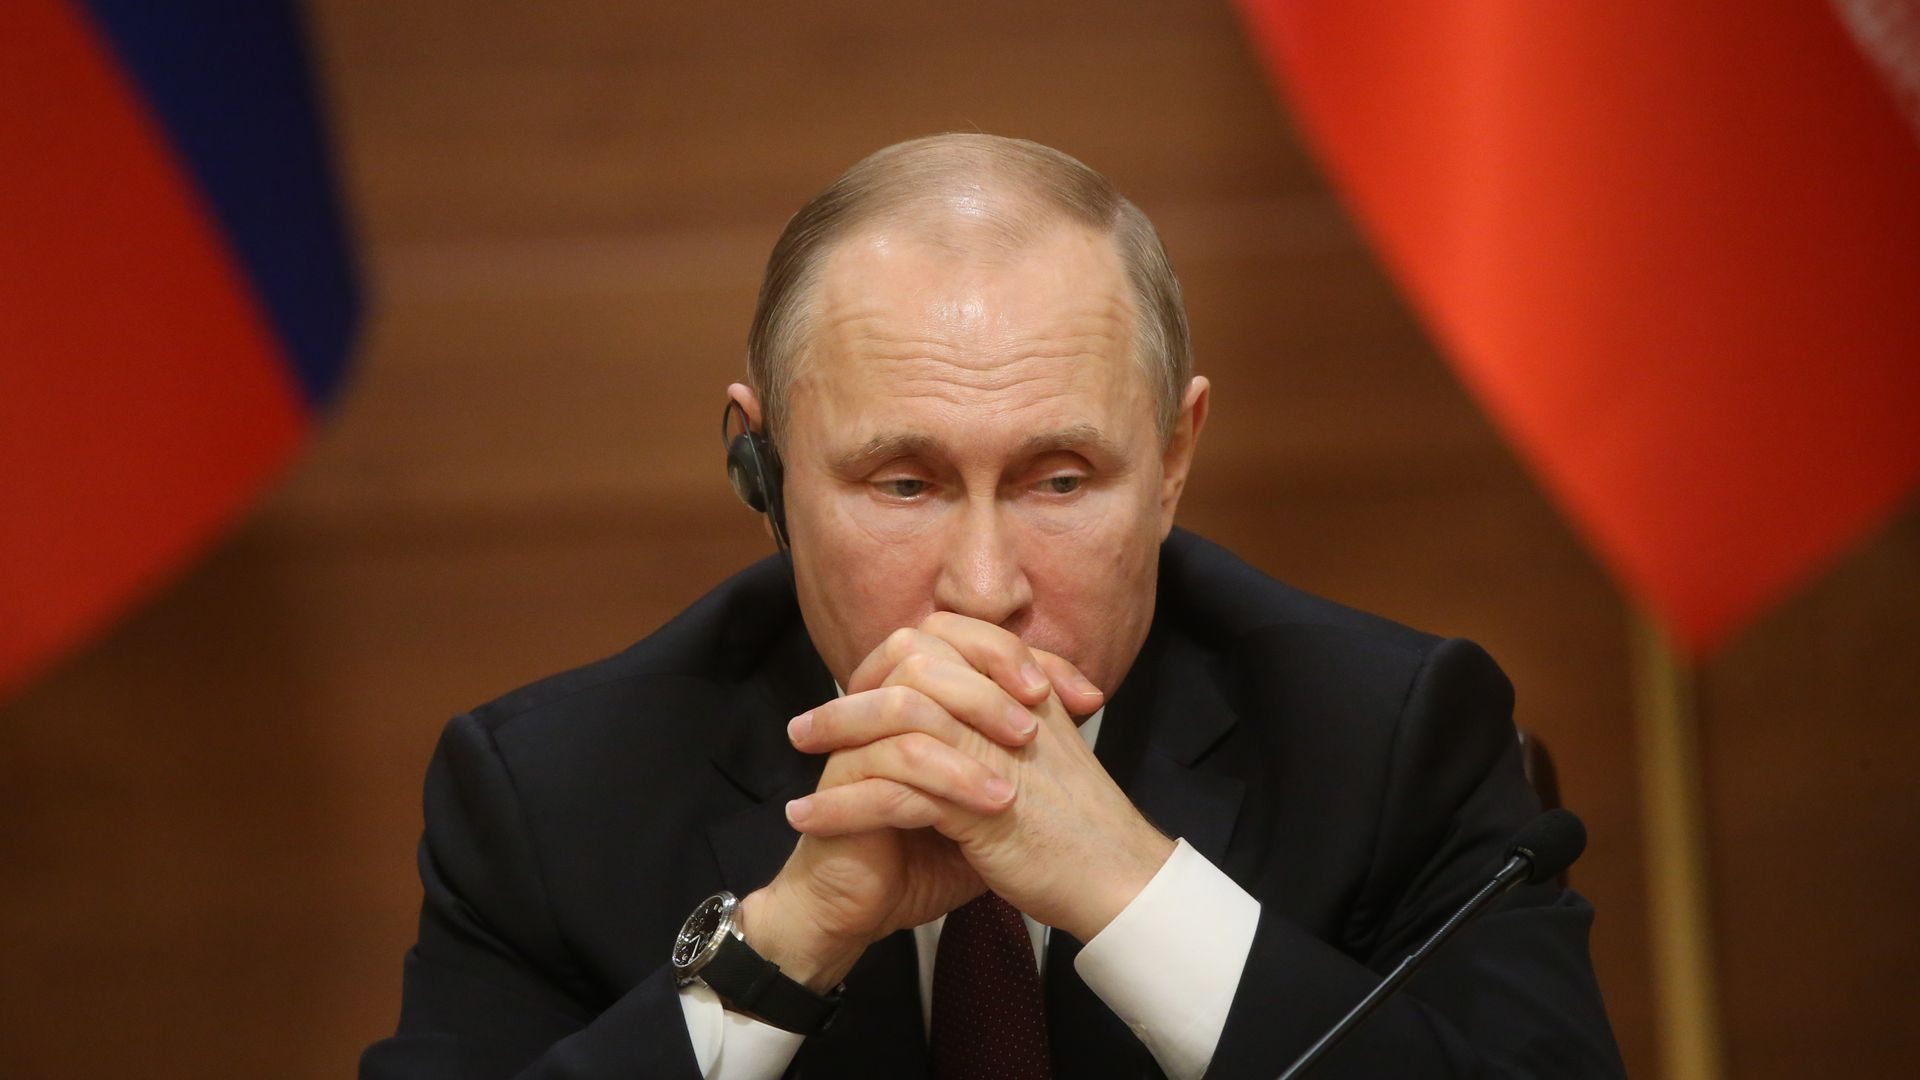 Vladimir Putin rests his head on steepled hands.